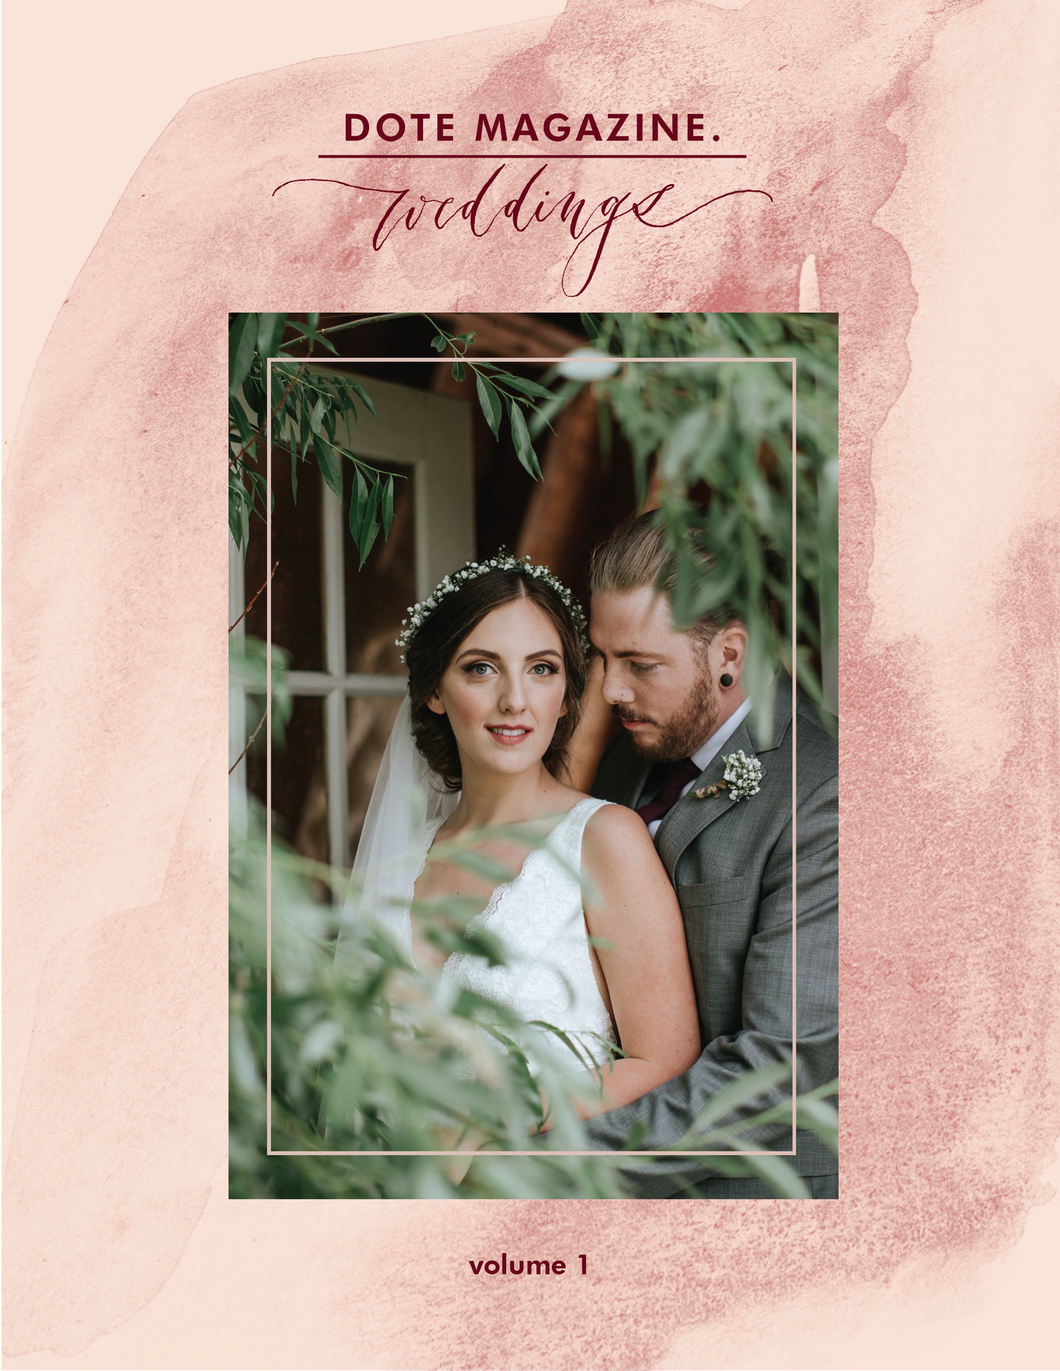 Dote Magazine Weddings Volume 1